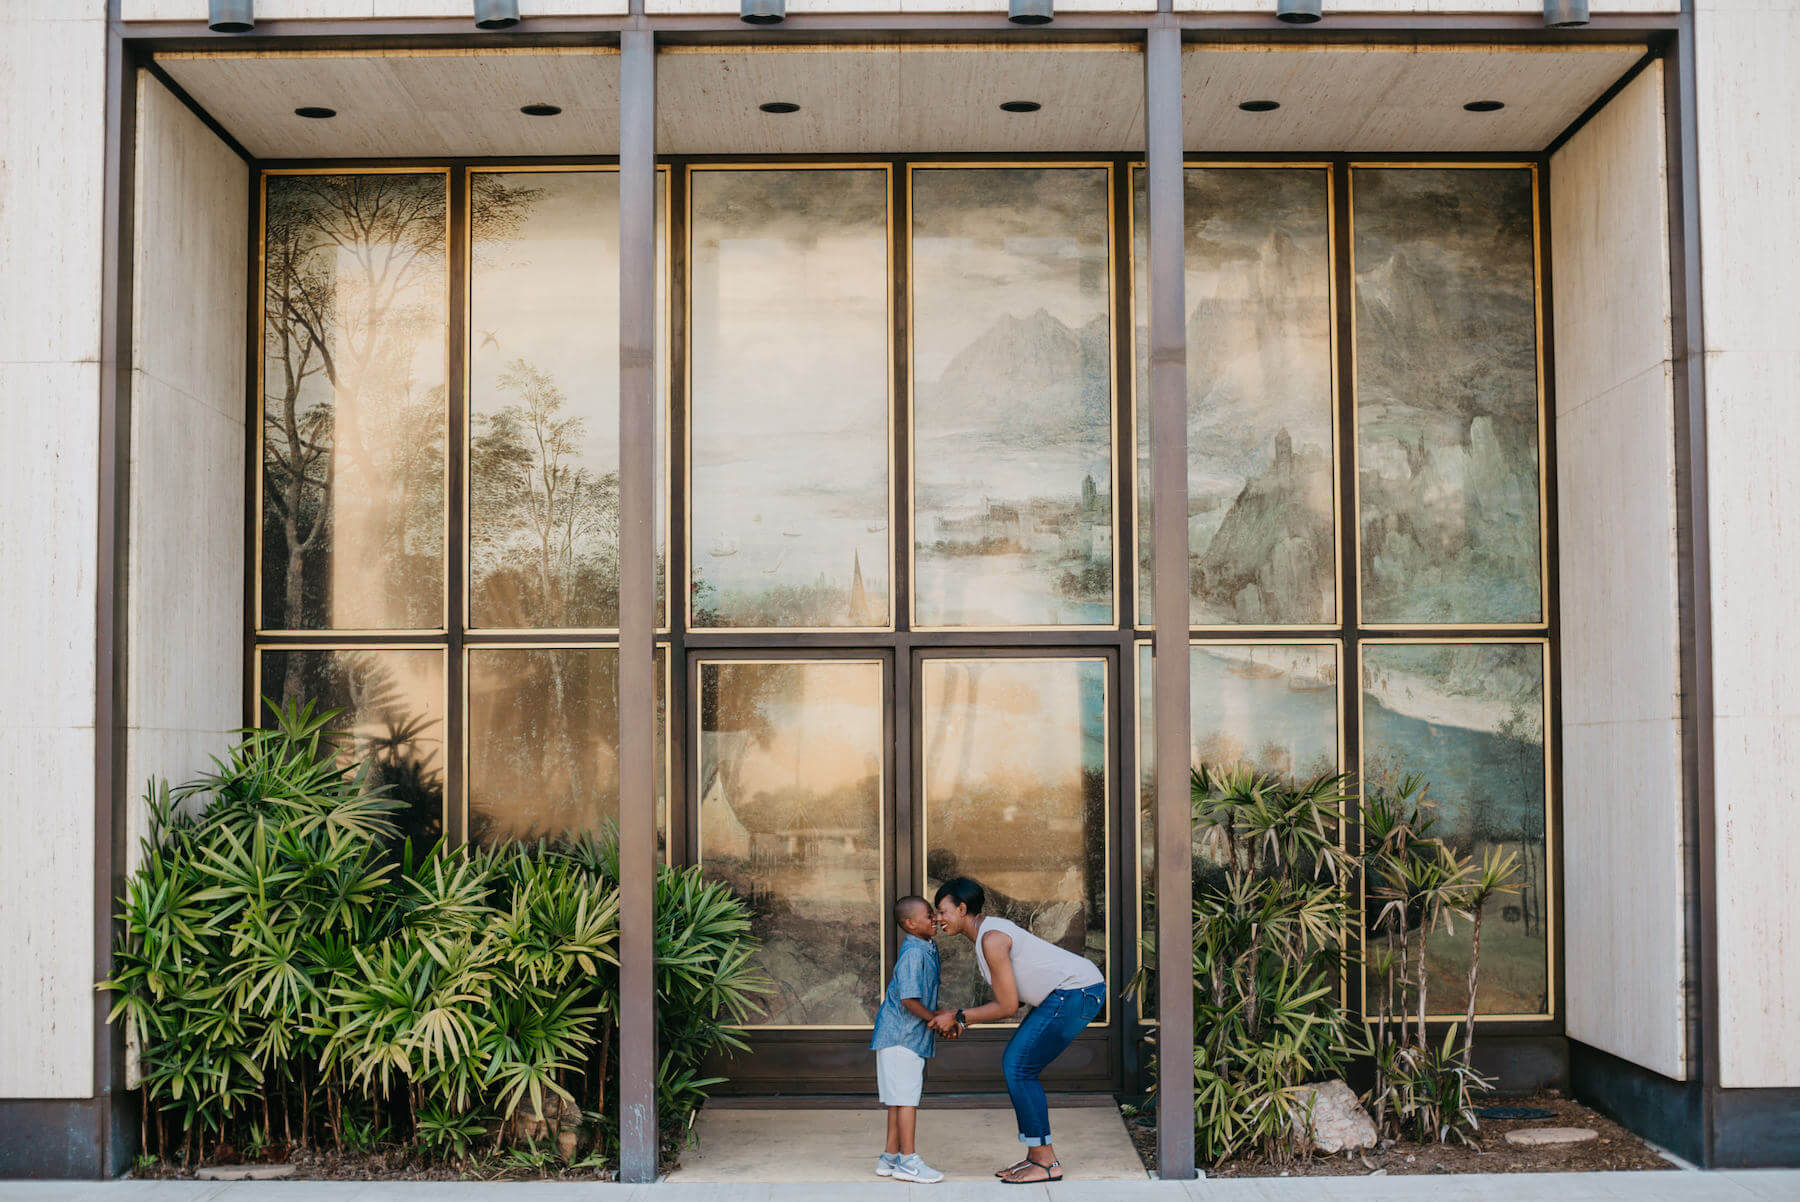 mother and son having fun, looking at each other in front of a large window in San Diego, California